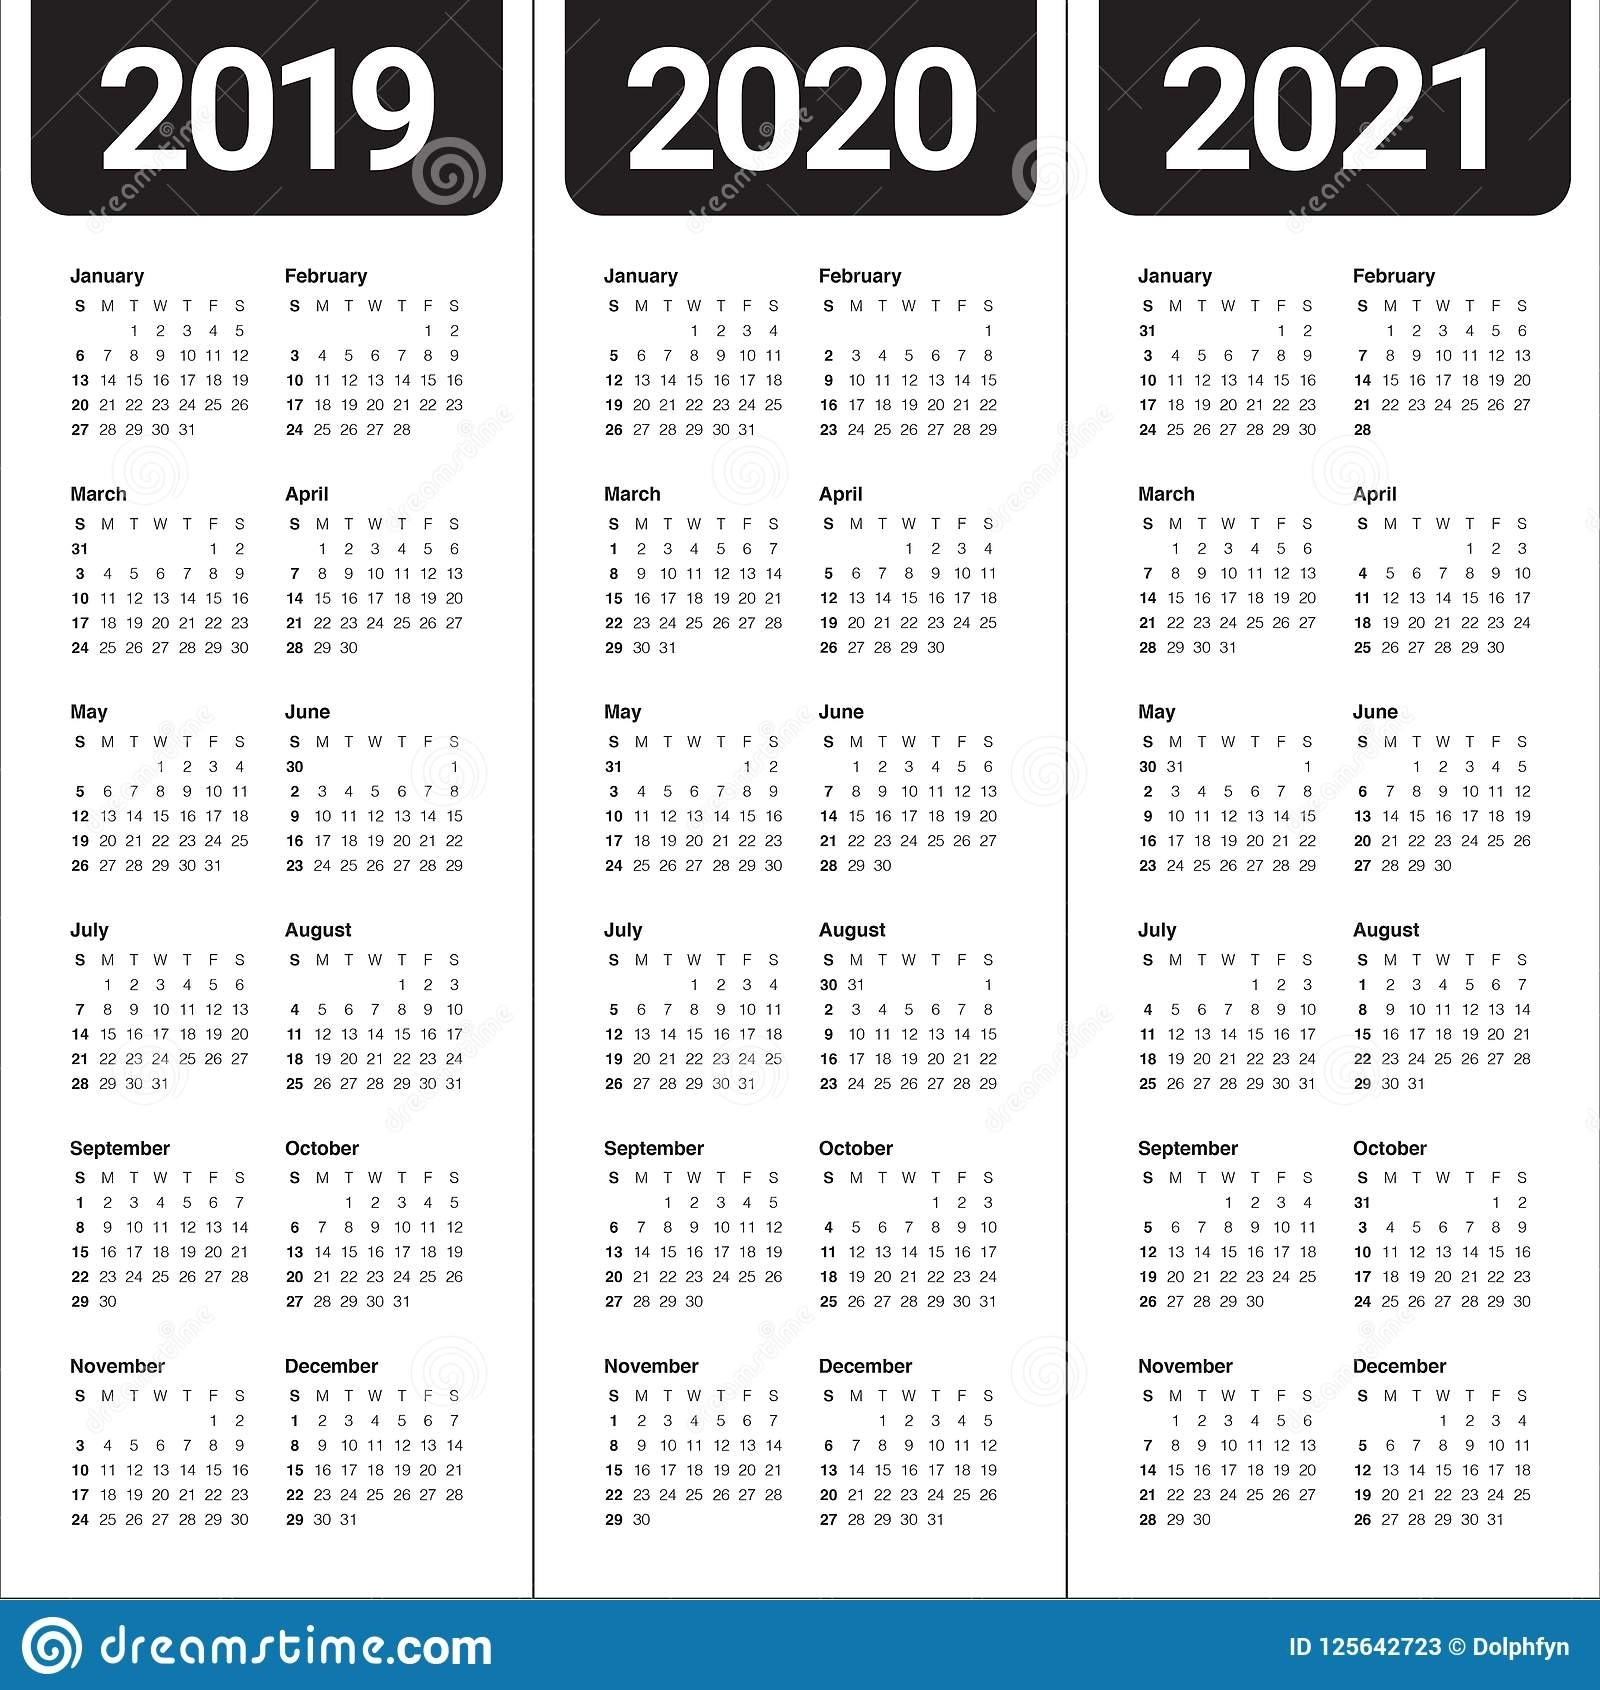 Year 2019 2020 2021 Calendar Vector Design Template Stock in 2019 To 2021 Printable Calendar